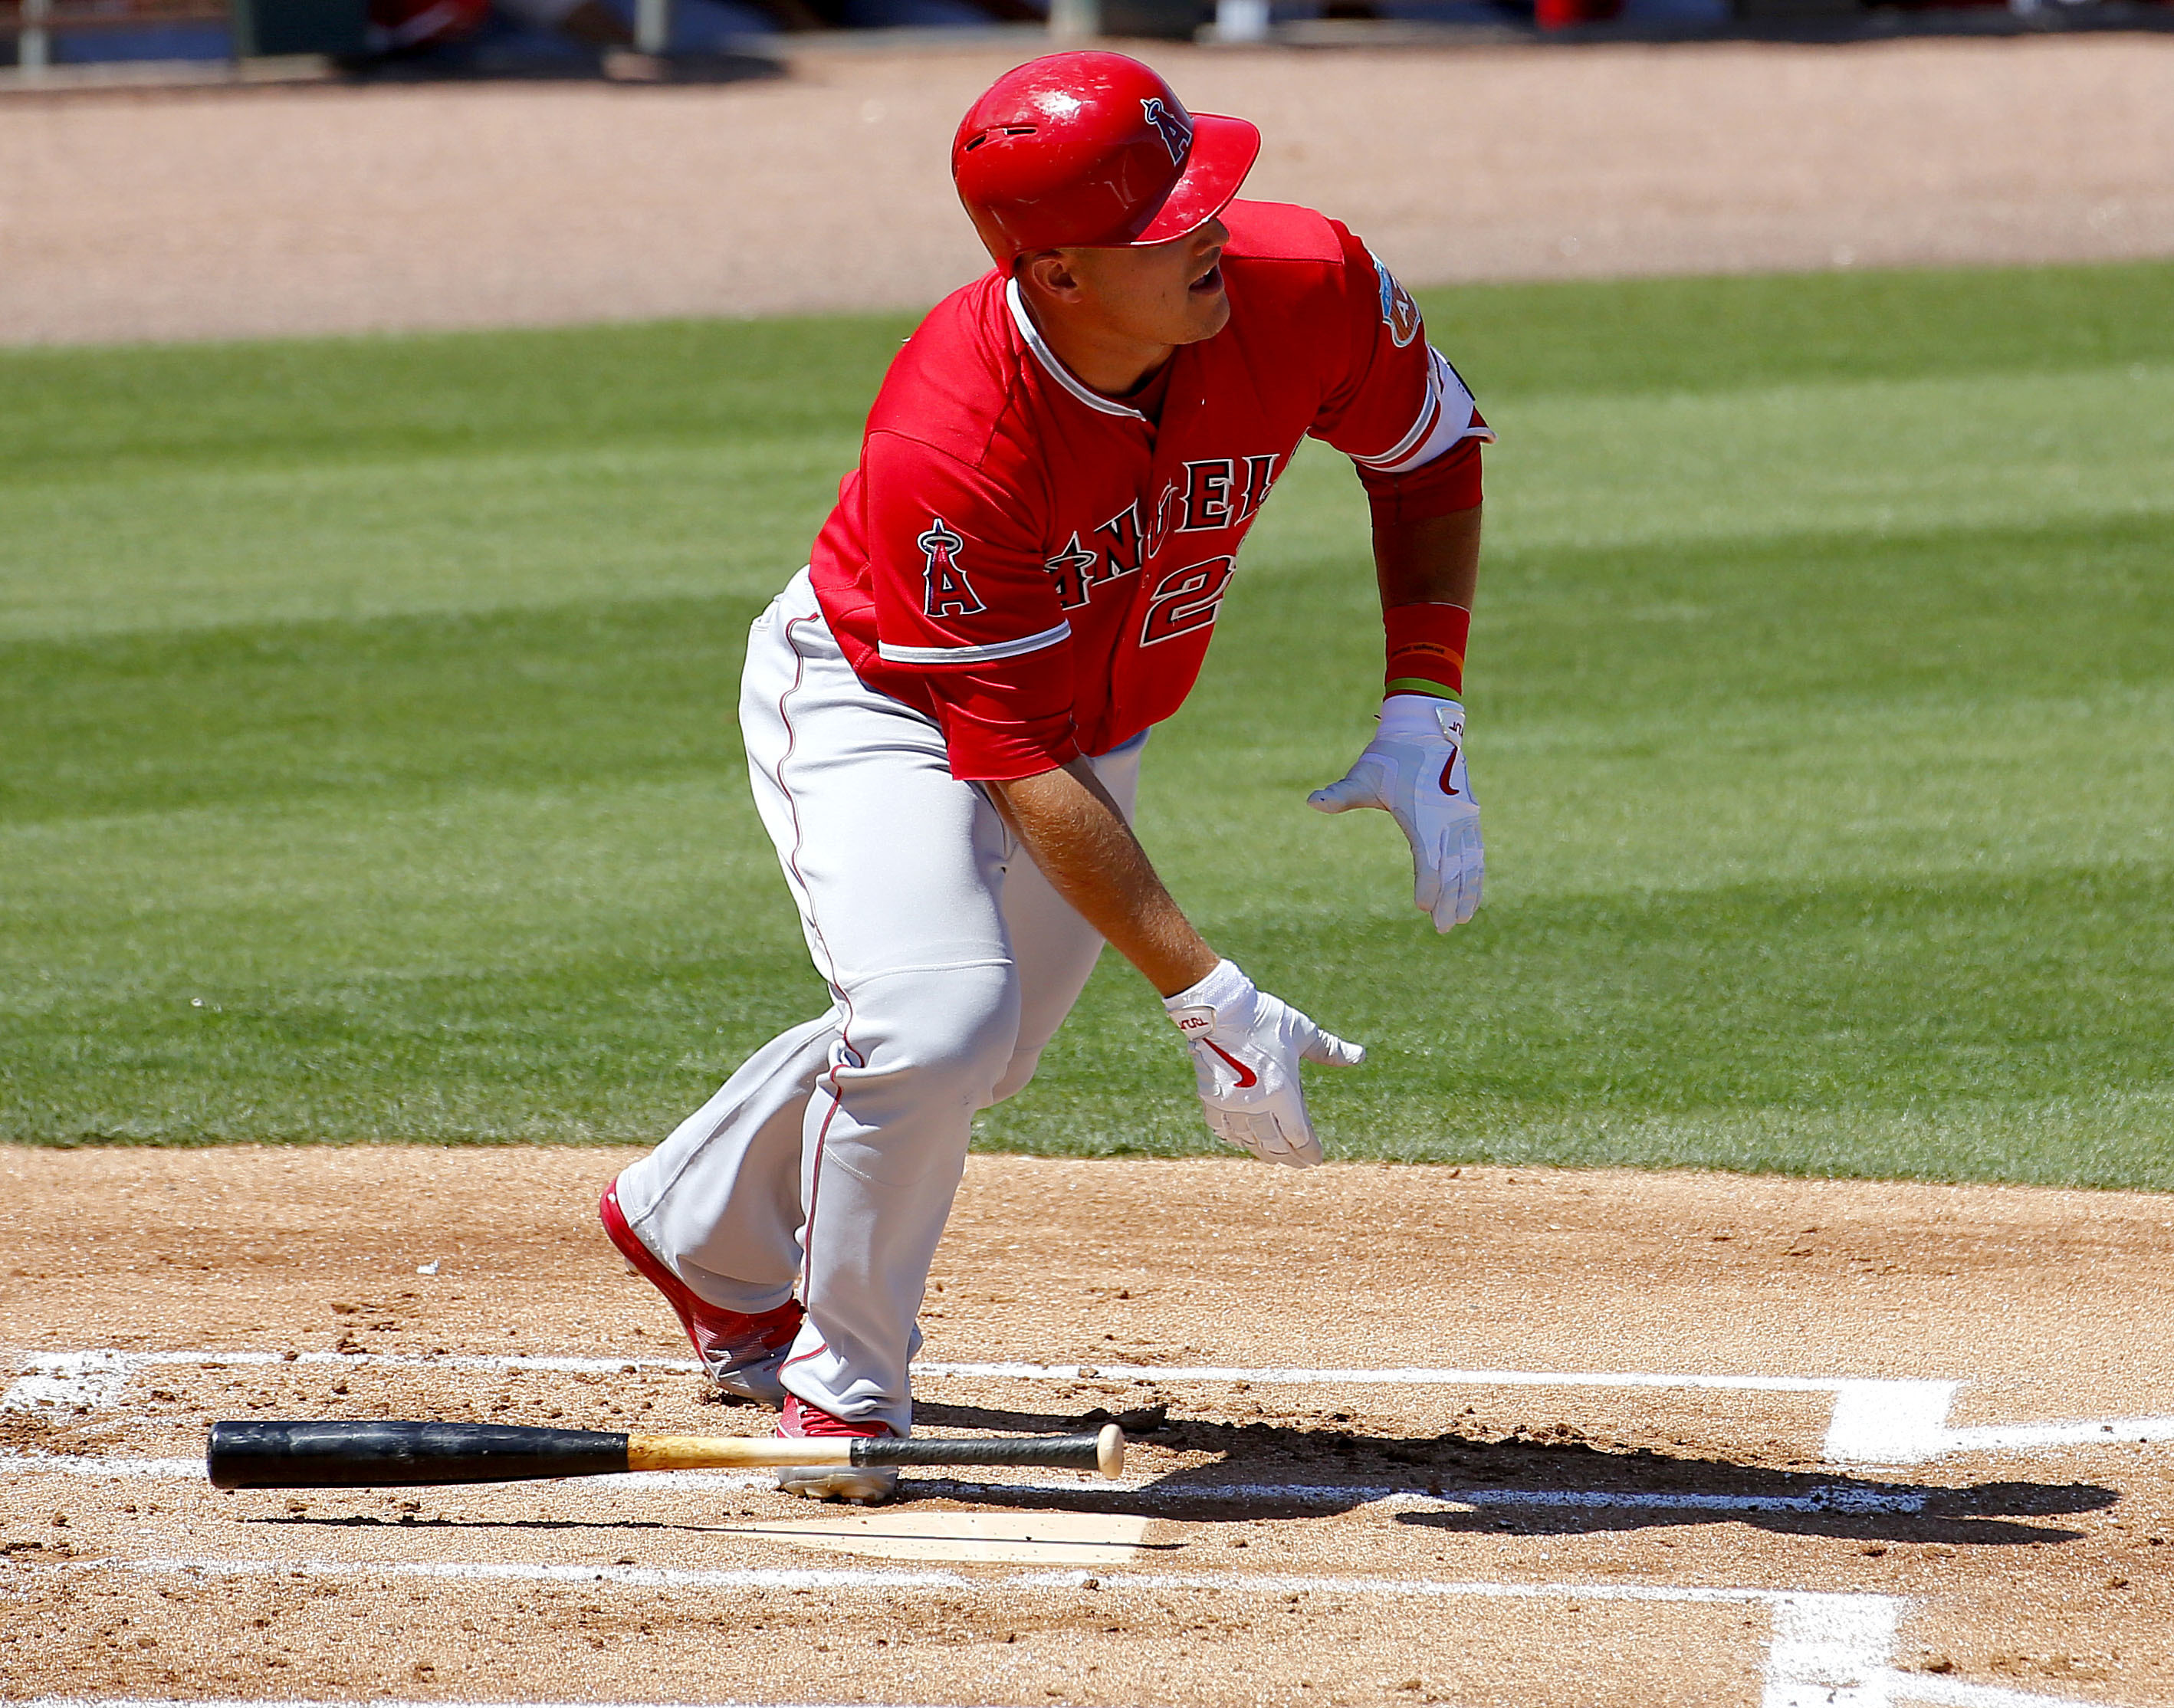 Los Angeles Angels Mike Trout breaks out of the batter's box after hitting a solo home run against the Oakland Athletics during the first inning of a spring training baseball game, Friday, March 25, 2016, in Mesa, Ariz. (AP Photo/Matt York)